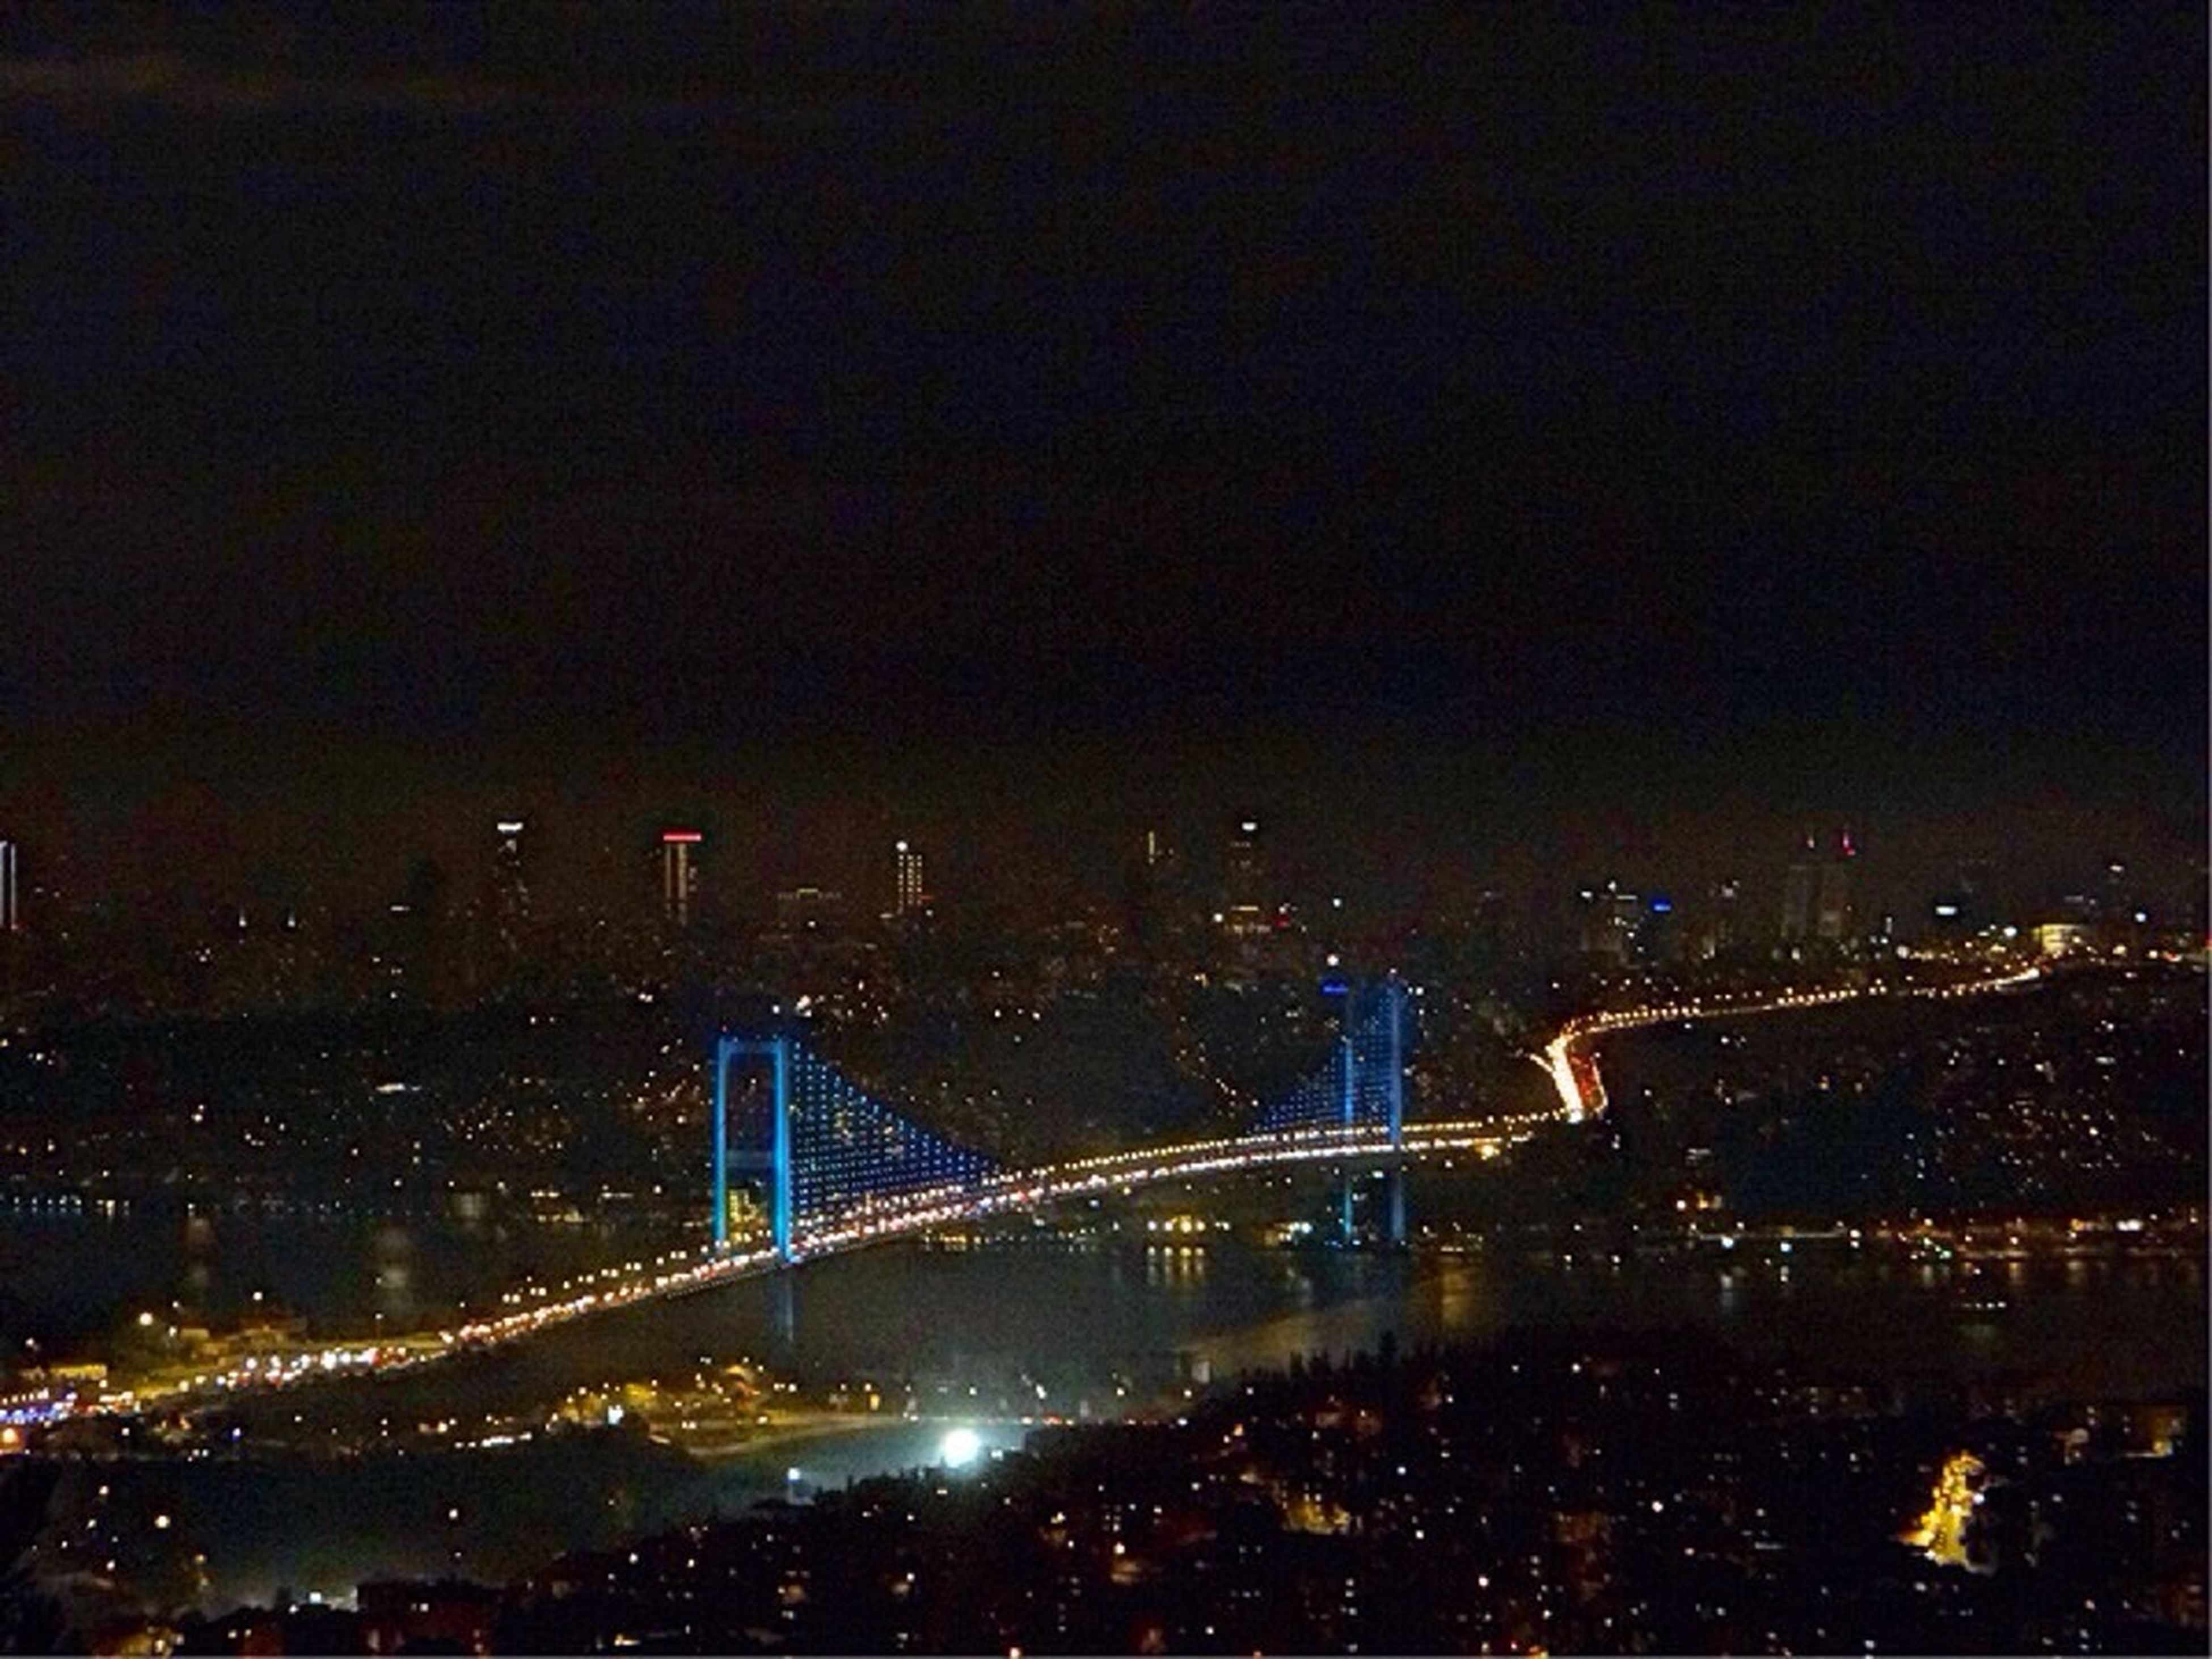 night, illuminated, city, architecture, built structure, bridge - man made structure, connection, cityscape, transportation, water, copy space, river, suspension bridge, bridge, building exterior, high angle view, sky, engineering, city life, travel destinations